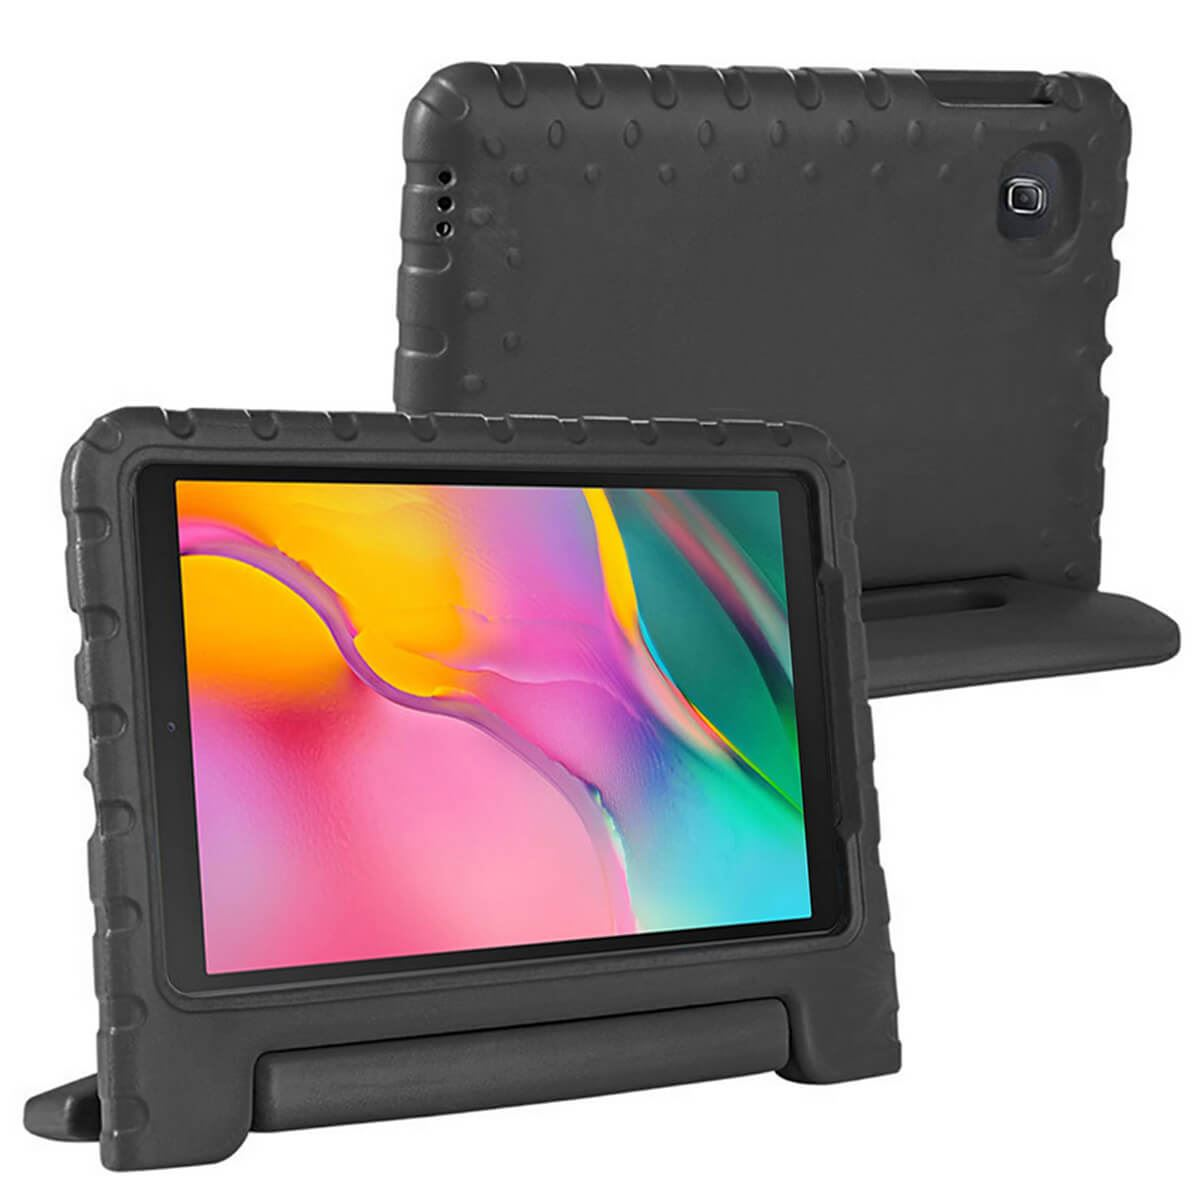 Shockproof-Protective-Case-Samsung-Galaxy-Tab-A-10-1-2016-Kids-Cover thumbnail 10